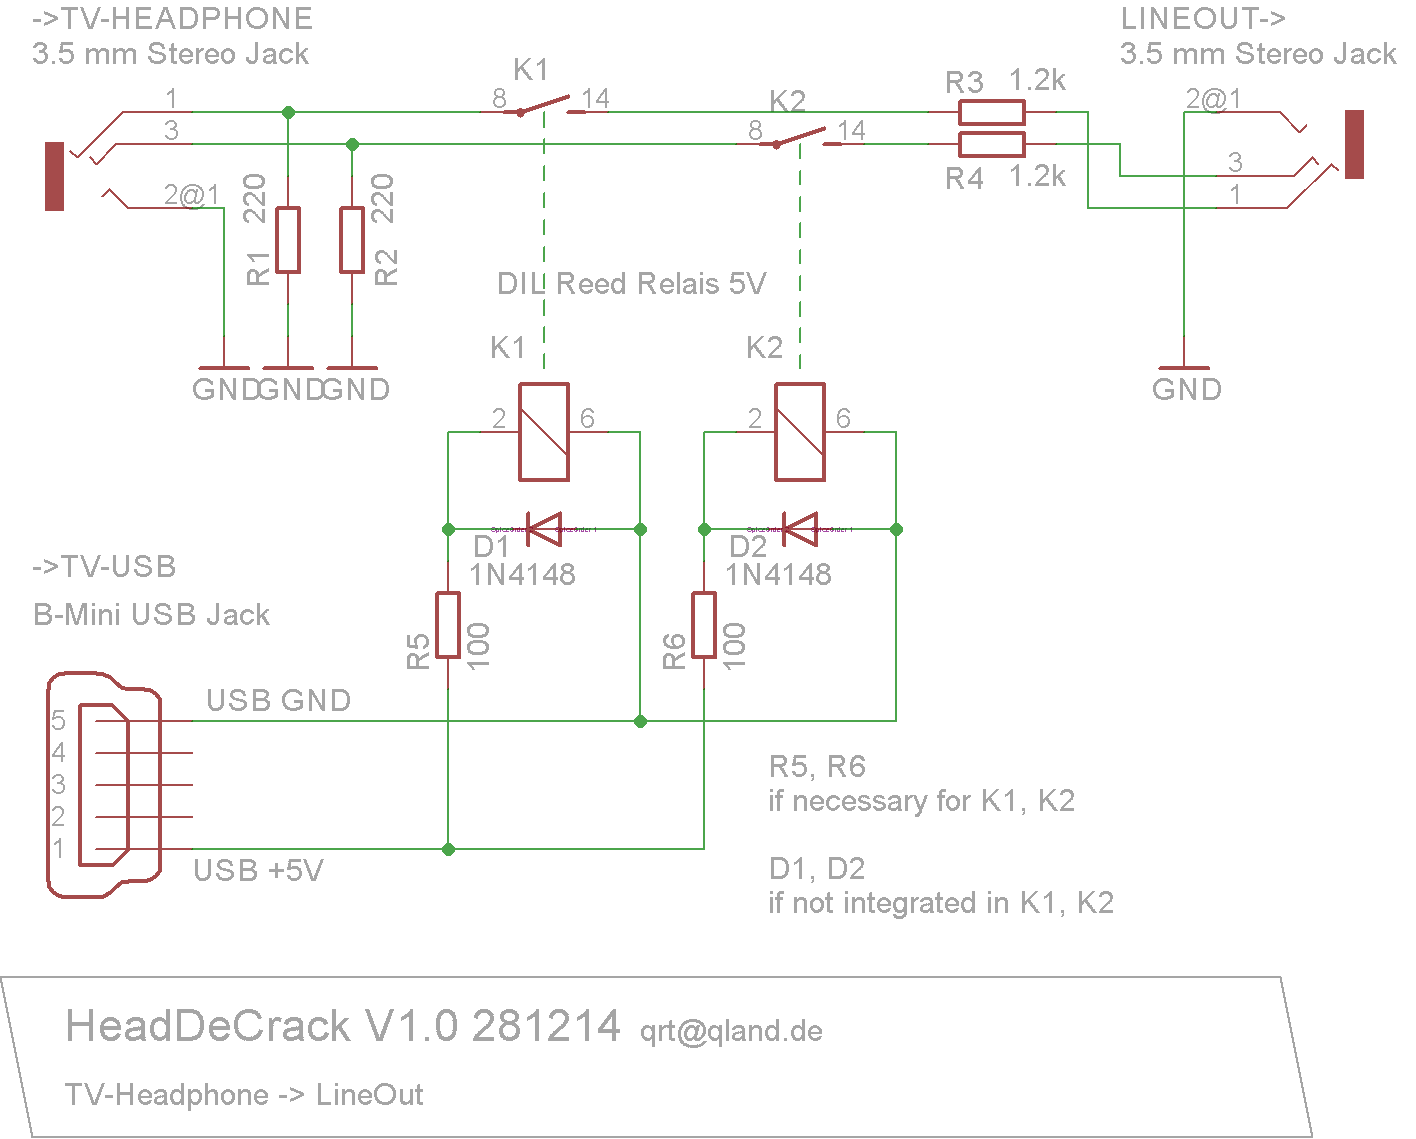 Electronic Headdecrack Usb Jack Schematic Will Prefer Cinch Connectors Here A Shielding Is Advisable But Seems Not Mandatory I Used The Bare Circuit Board At First Without Grand Disturbance